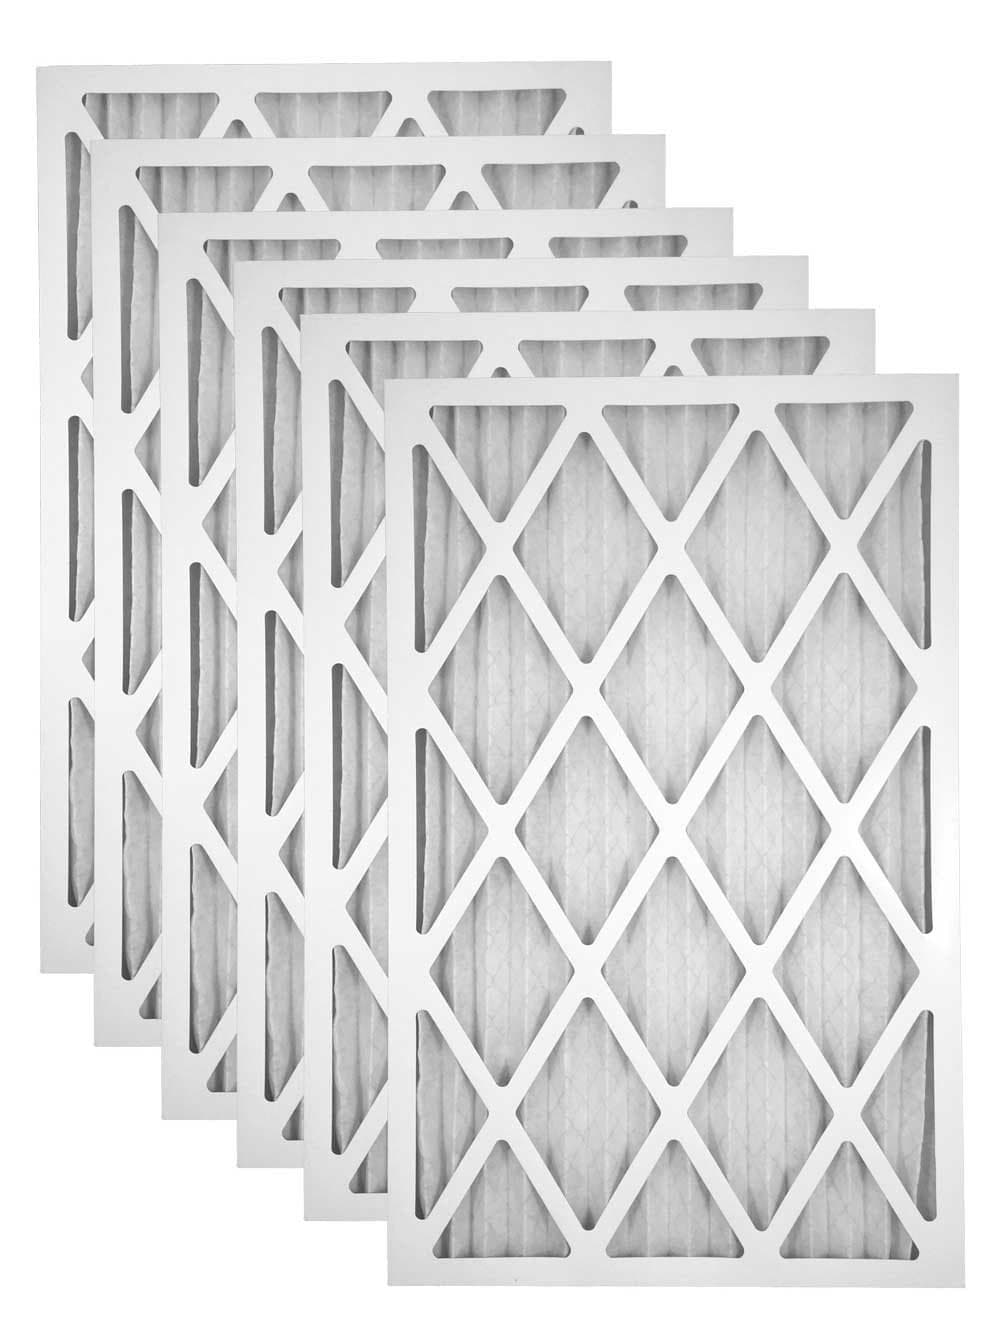 10x24x1 Merv 8 AC Furnace Filter - Case of 6